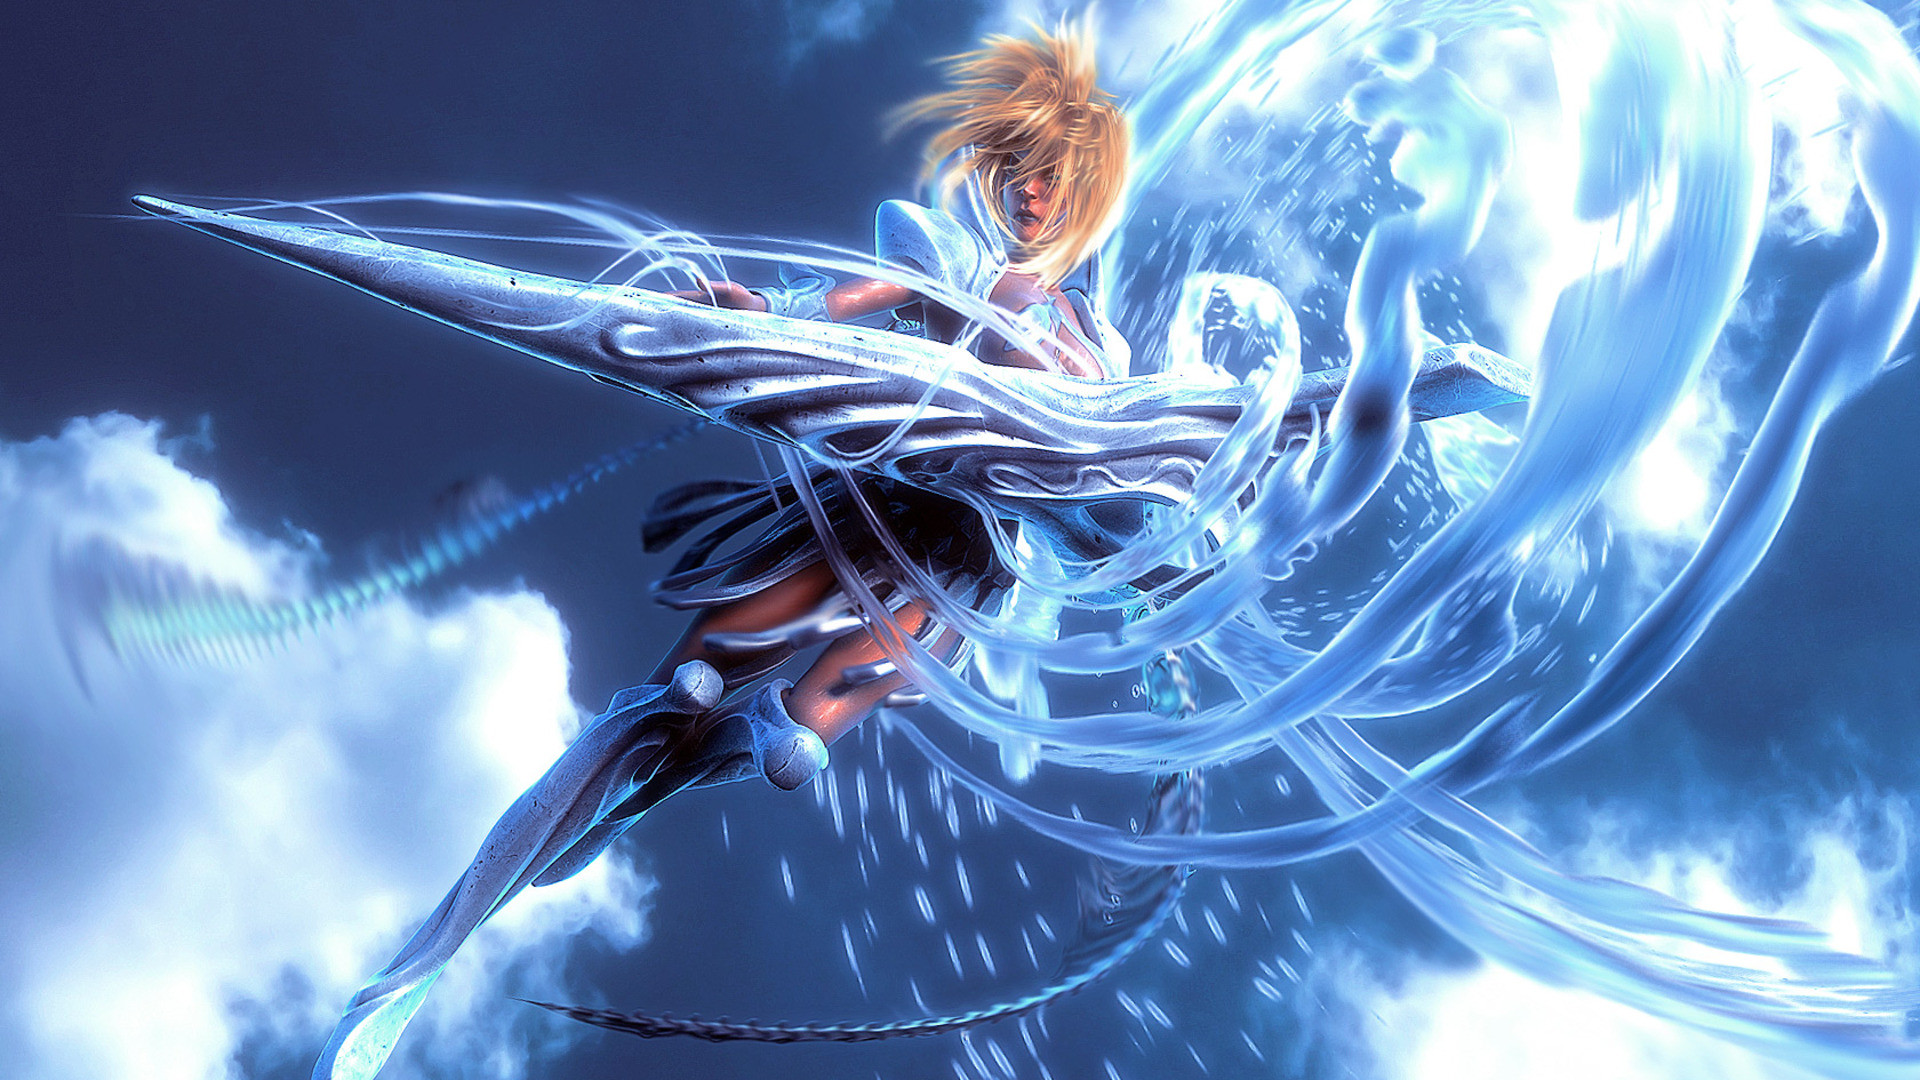 Anime bleach wallpapers pixelstalk net - Anime images download ...